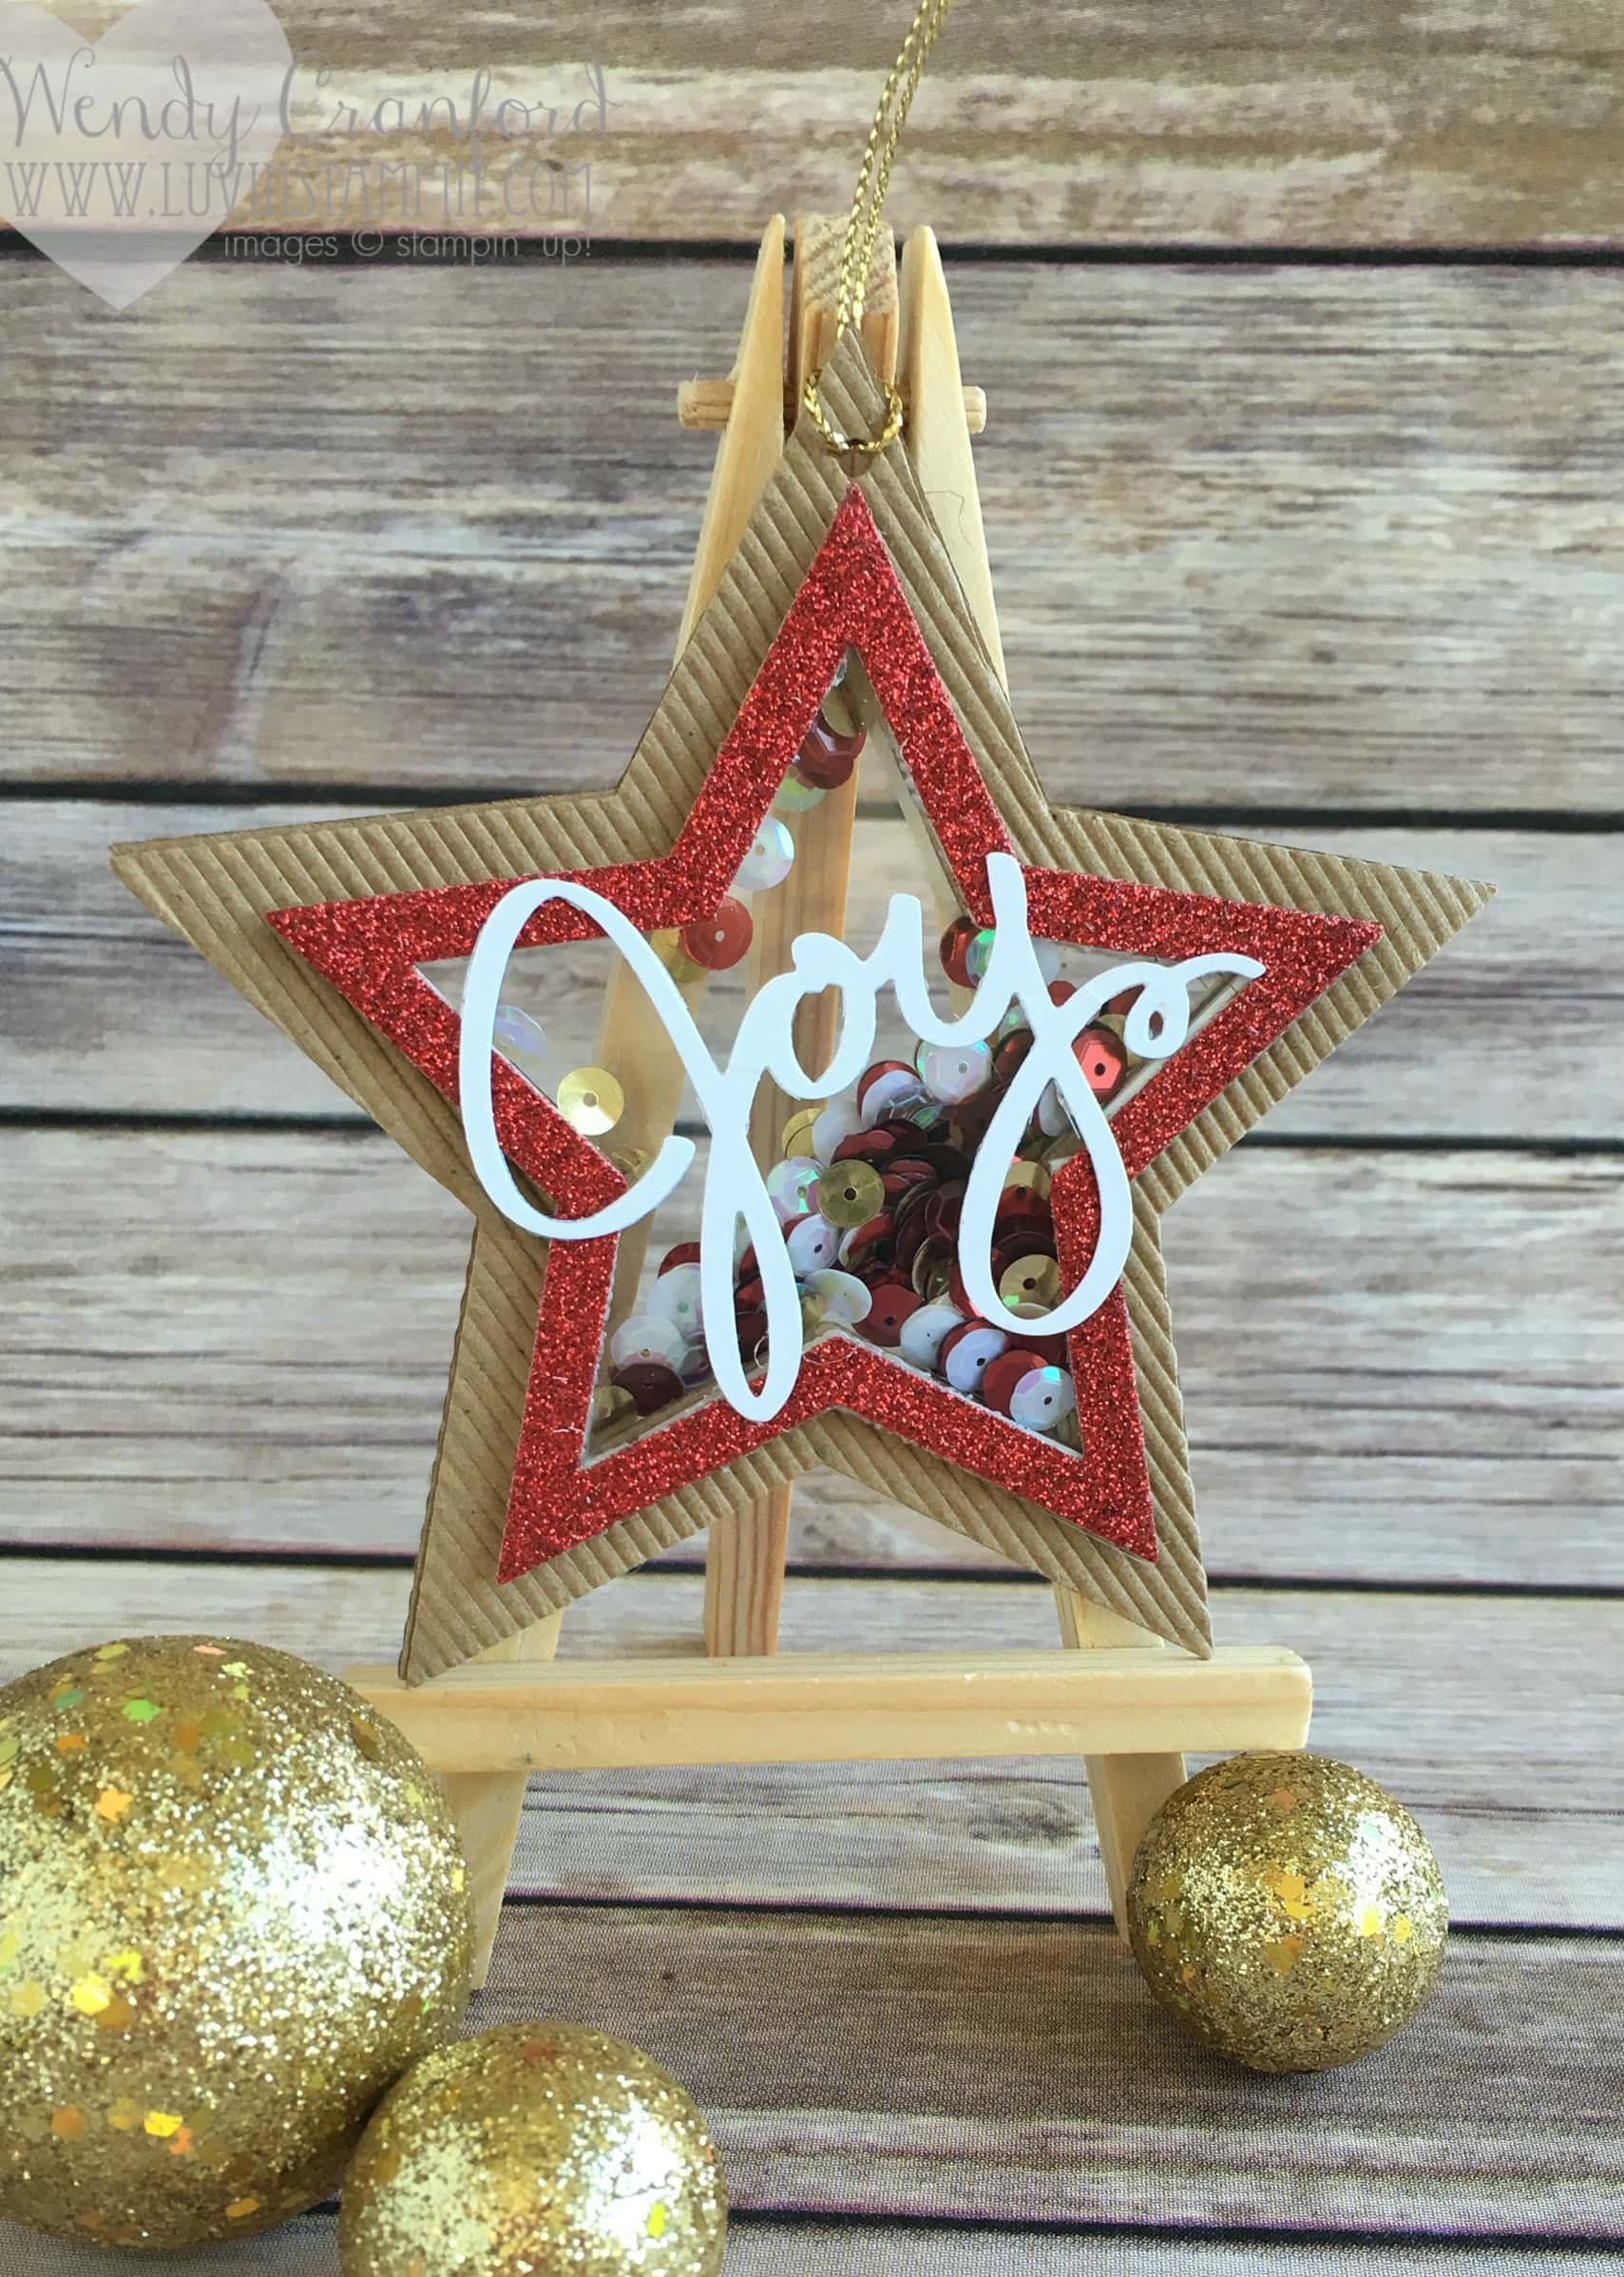 create this star shaker ornament using the star framelits from stampin up and wow the star christmas tree